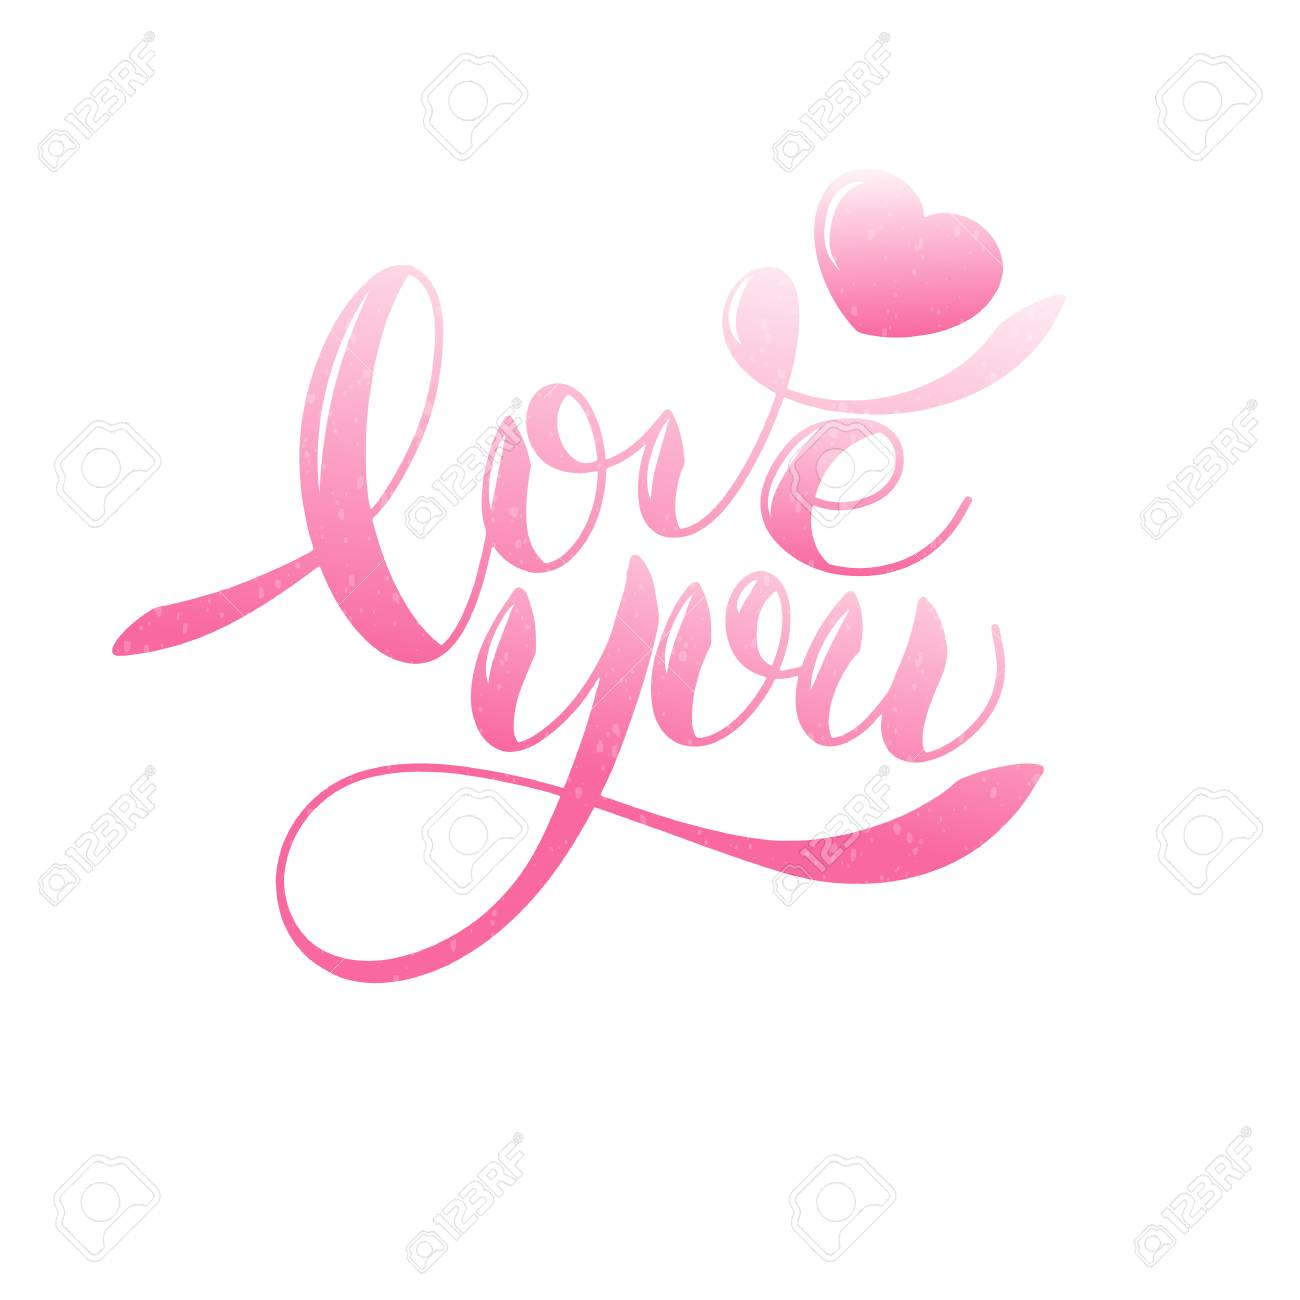 I love you romantic text, Calligraphic love lettering - 94204746